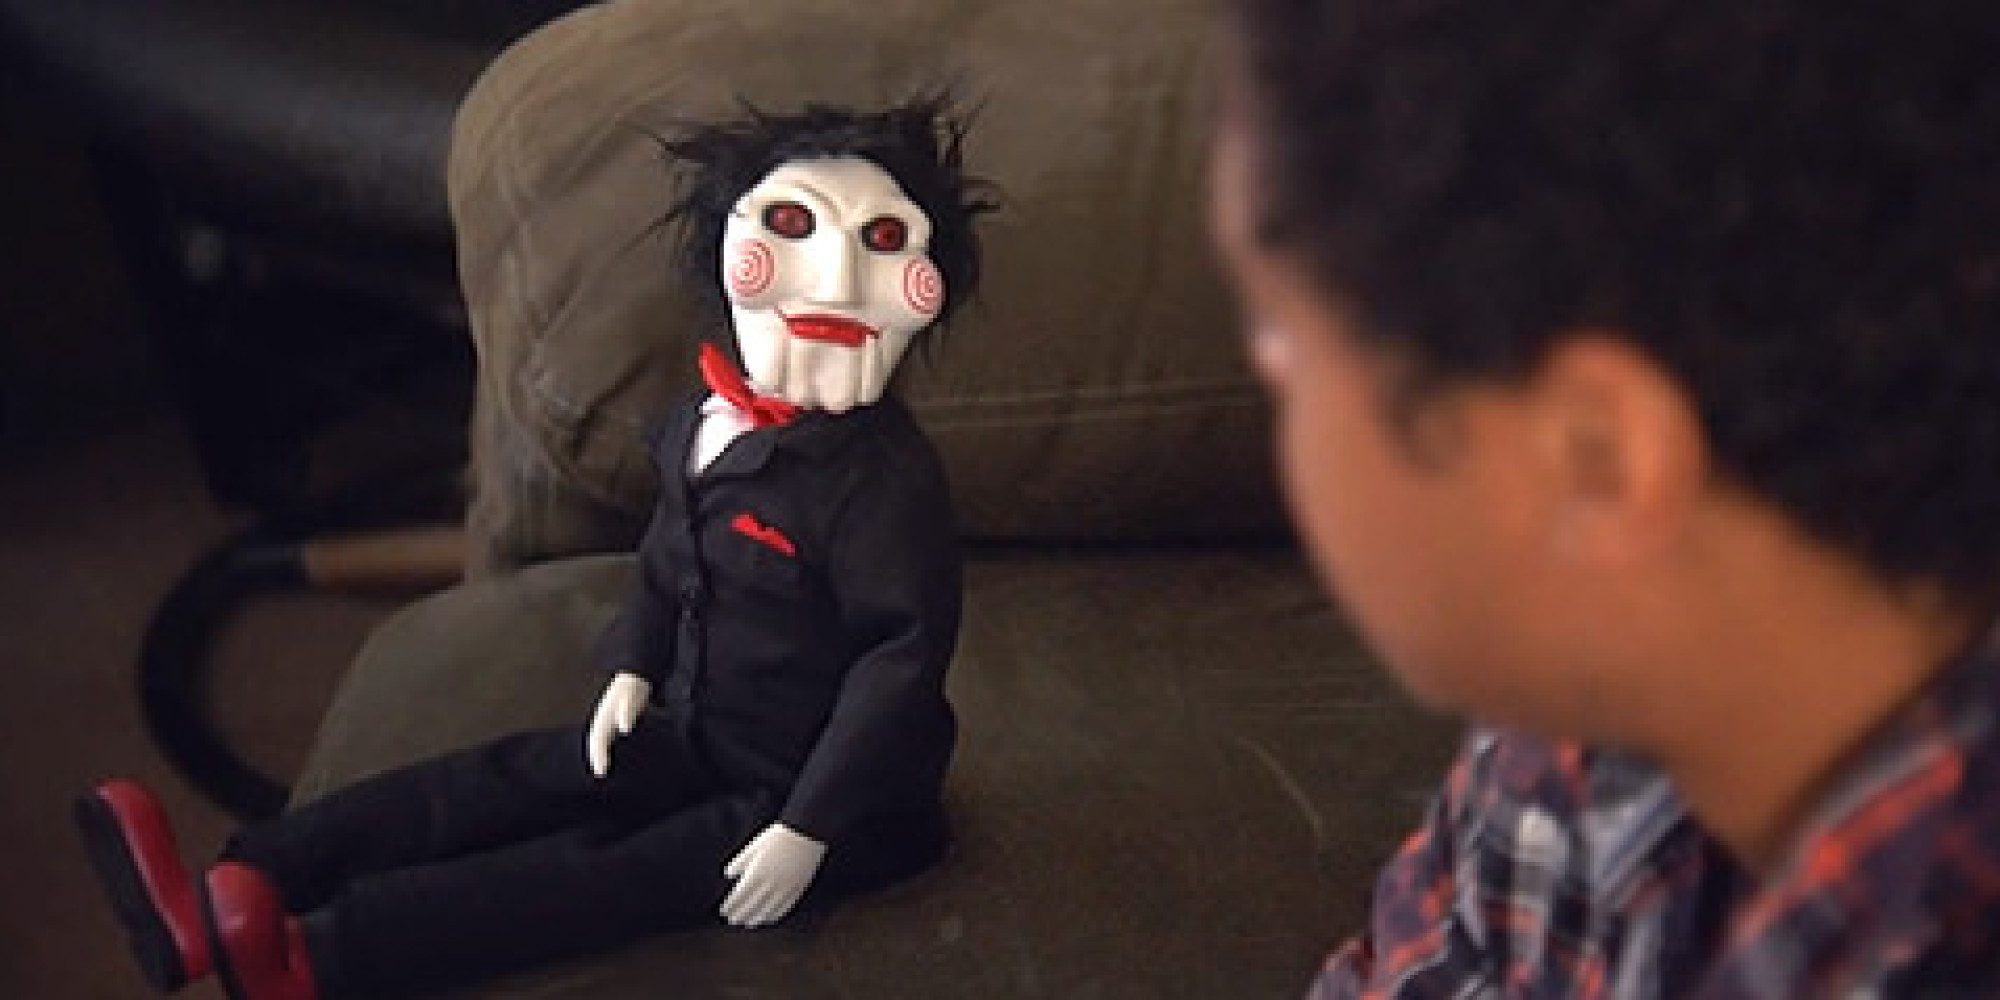 Jigsaw From 'Saw' Is The Worst Roommate EVER | HuffPost